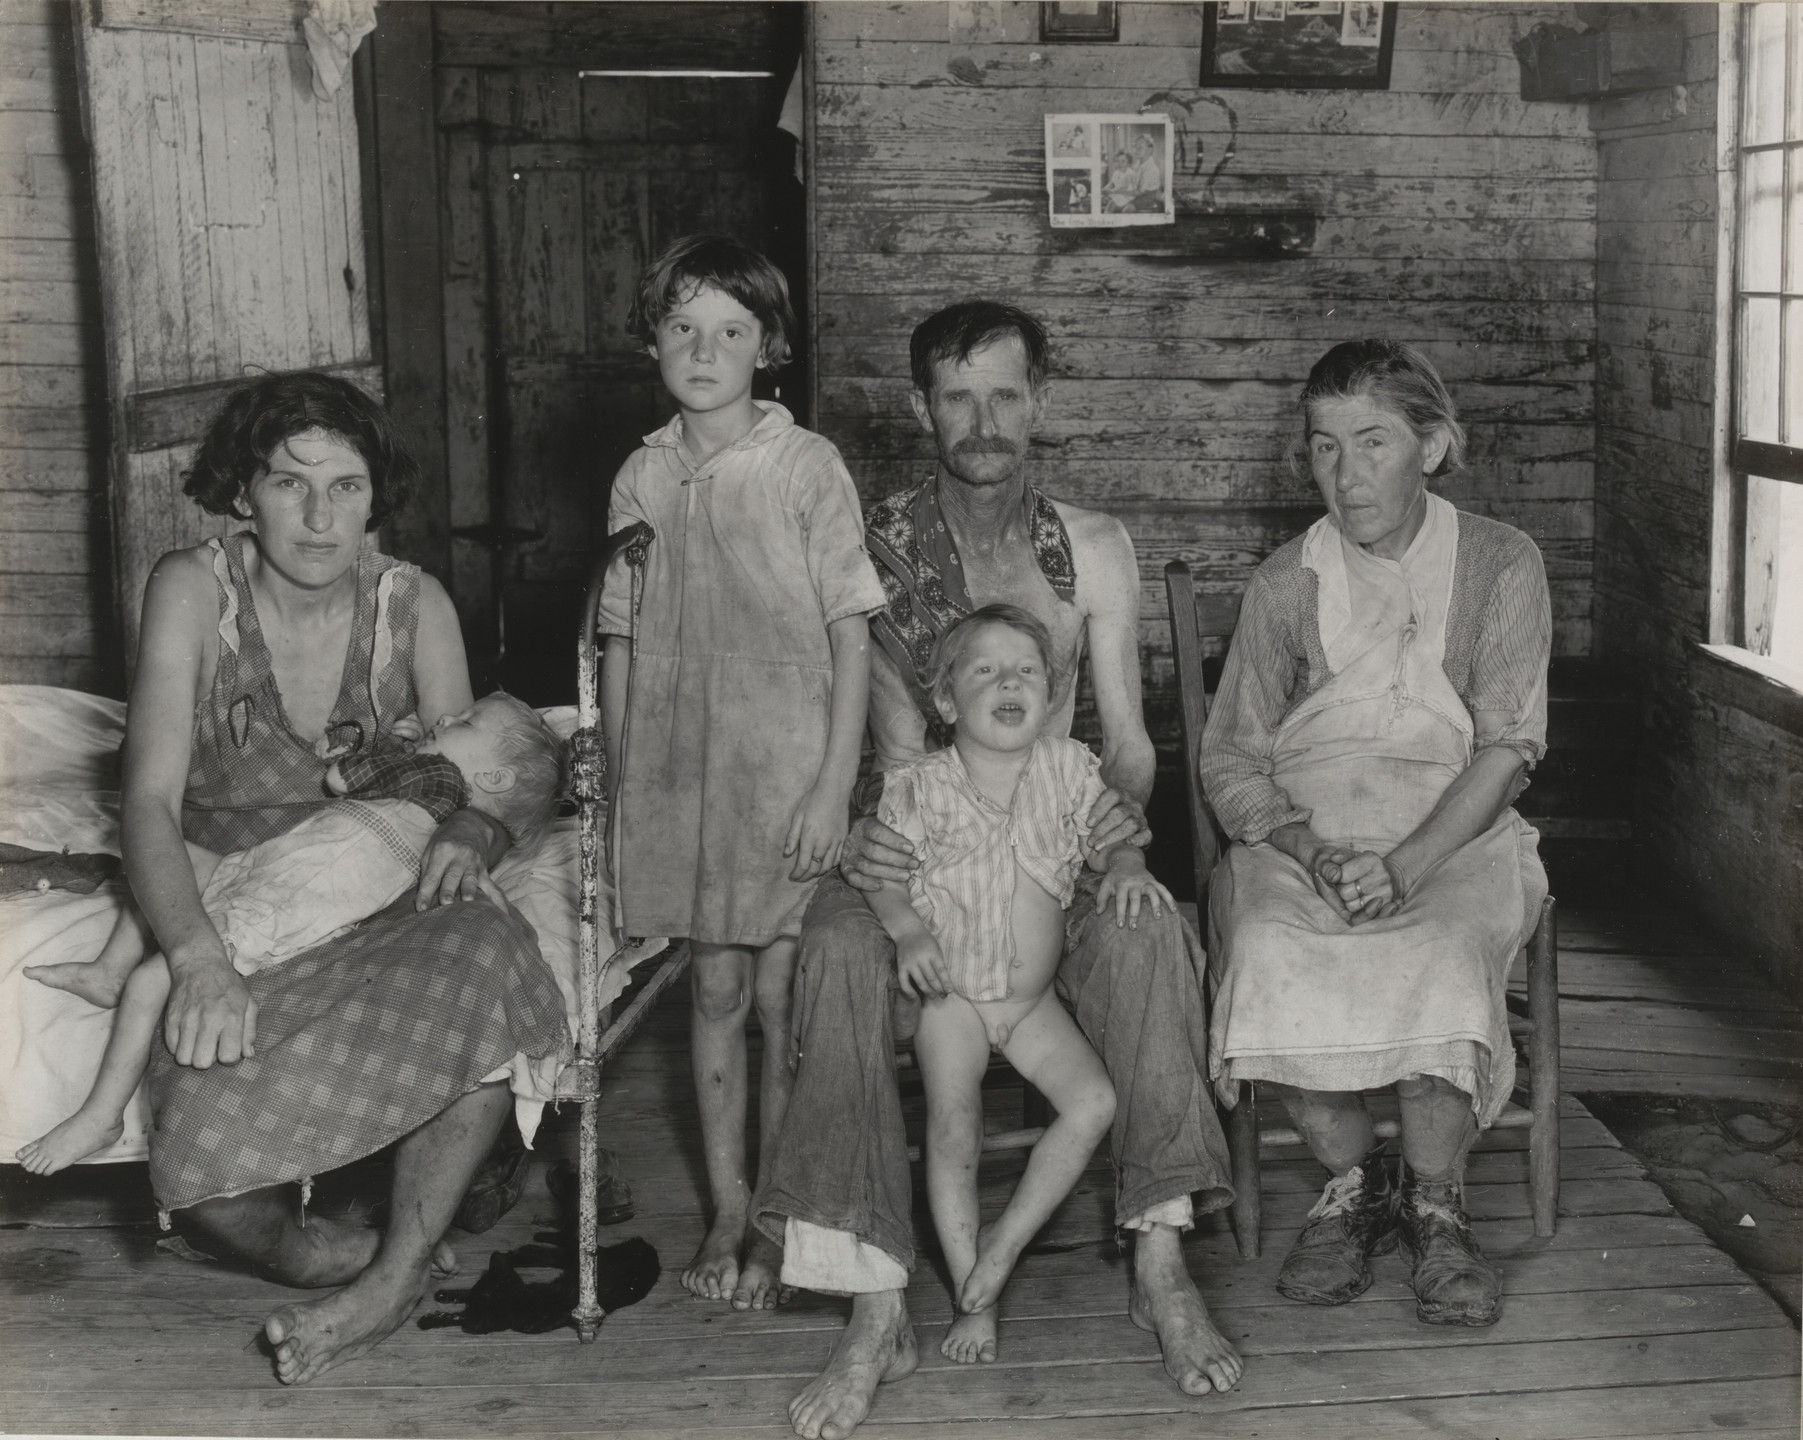 Walker Evans. Sharecropper's Family, Hale County, Alabama. March 1936